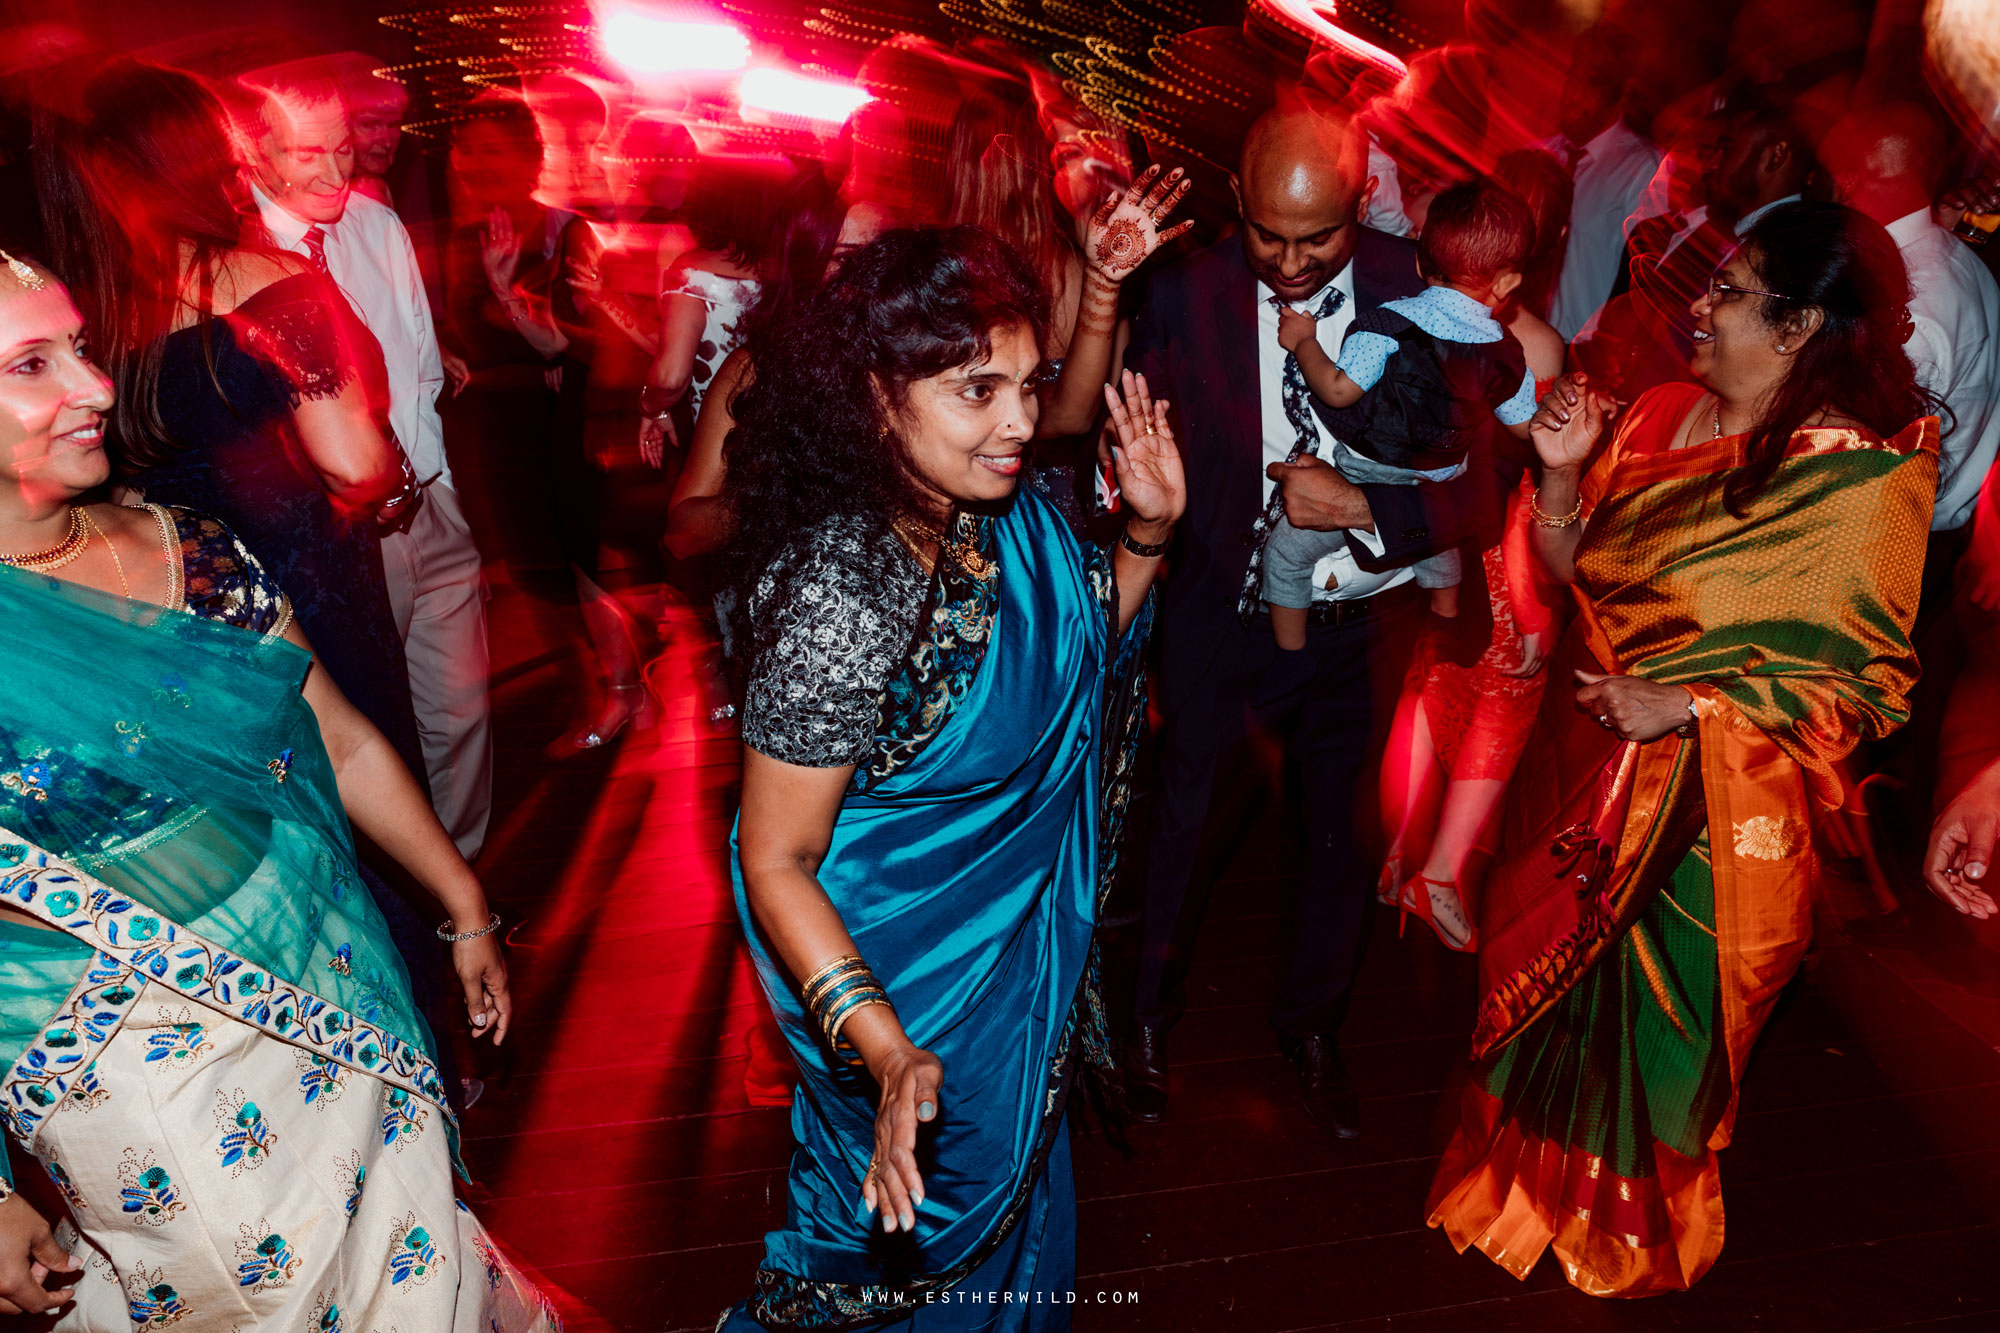 Northbrook_Park_Farnham_Surrey_London_Wedding_Hindu_Fusion_Esther_Wild_Photographer_IMG_7131.jpg